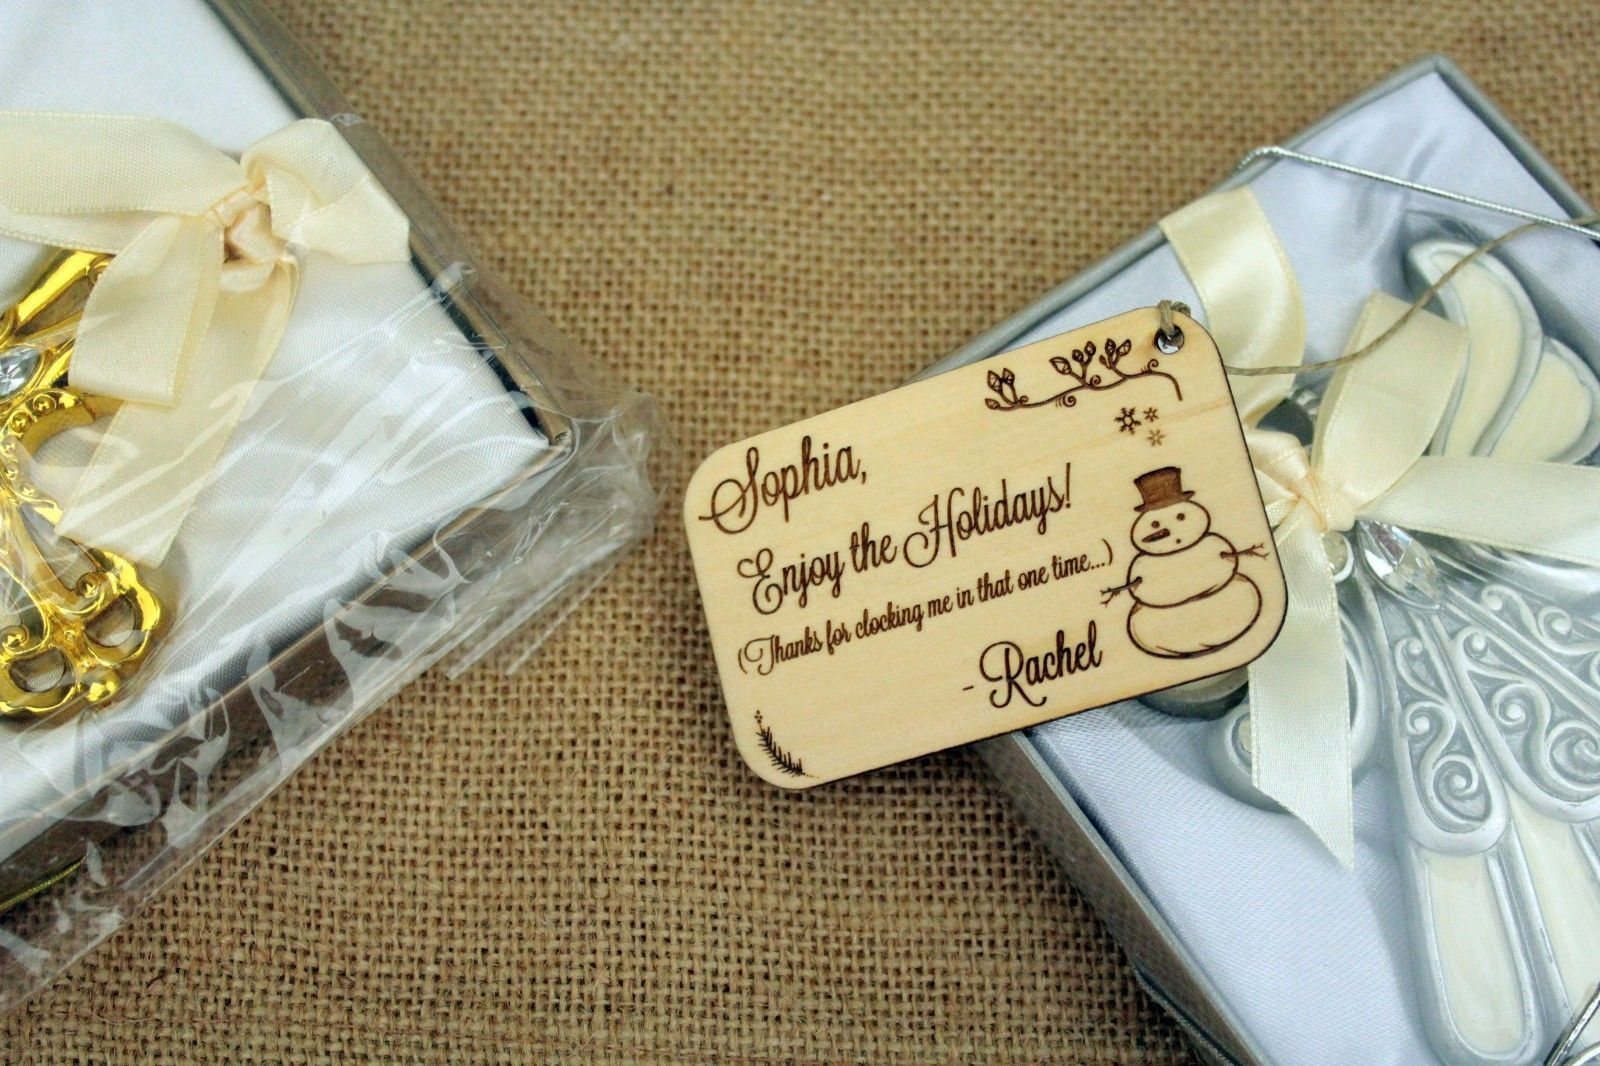 144 Horseshoe Key Chain Favors Wedding Bridal Shower Party Gift Casino Lucky